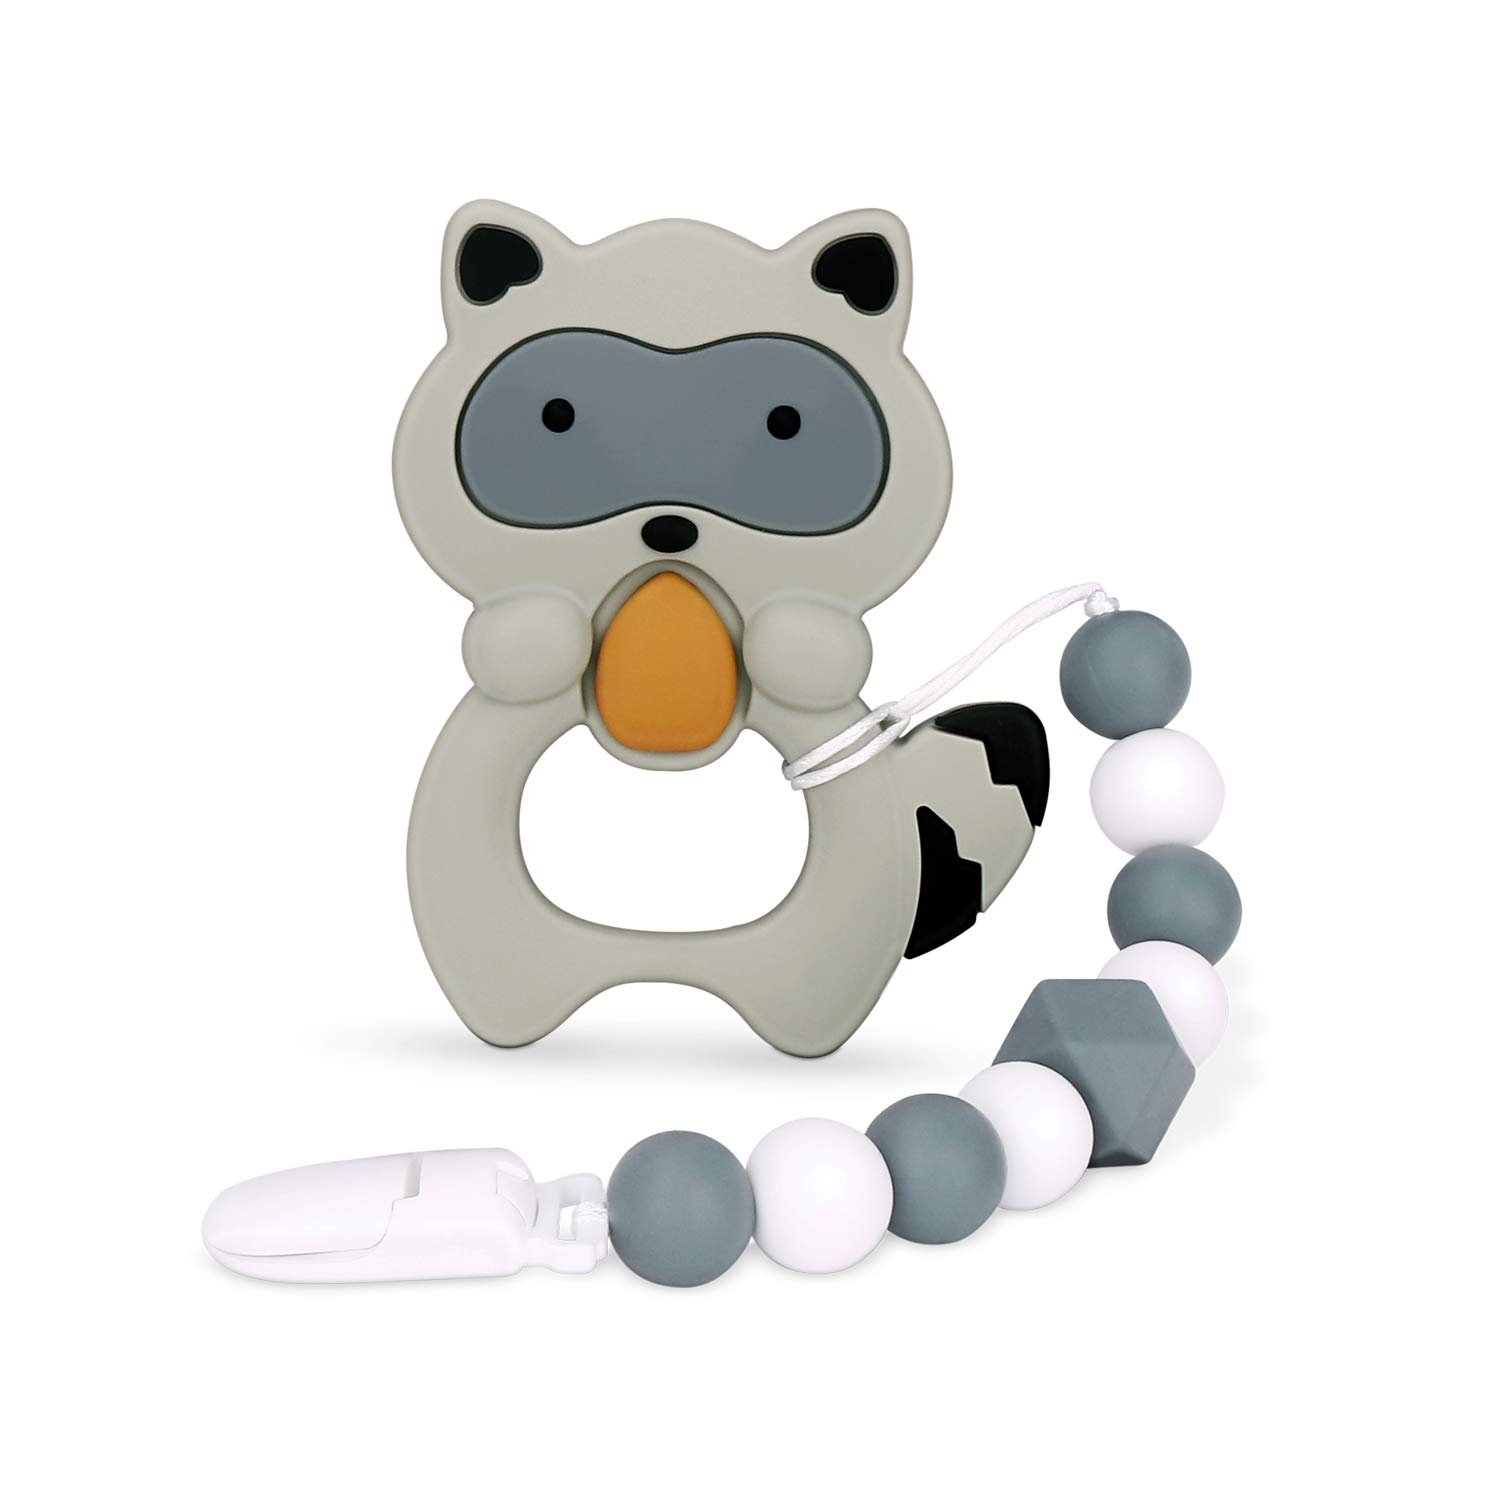 moopok Baby Teething Toys, Teething Pain Relief, Silicone Teether with Pacifier Clip Natural BPA Free Raccoon for Freezer - Best Newborn Shower Gifts for Trendy Boy or Girl…